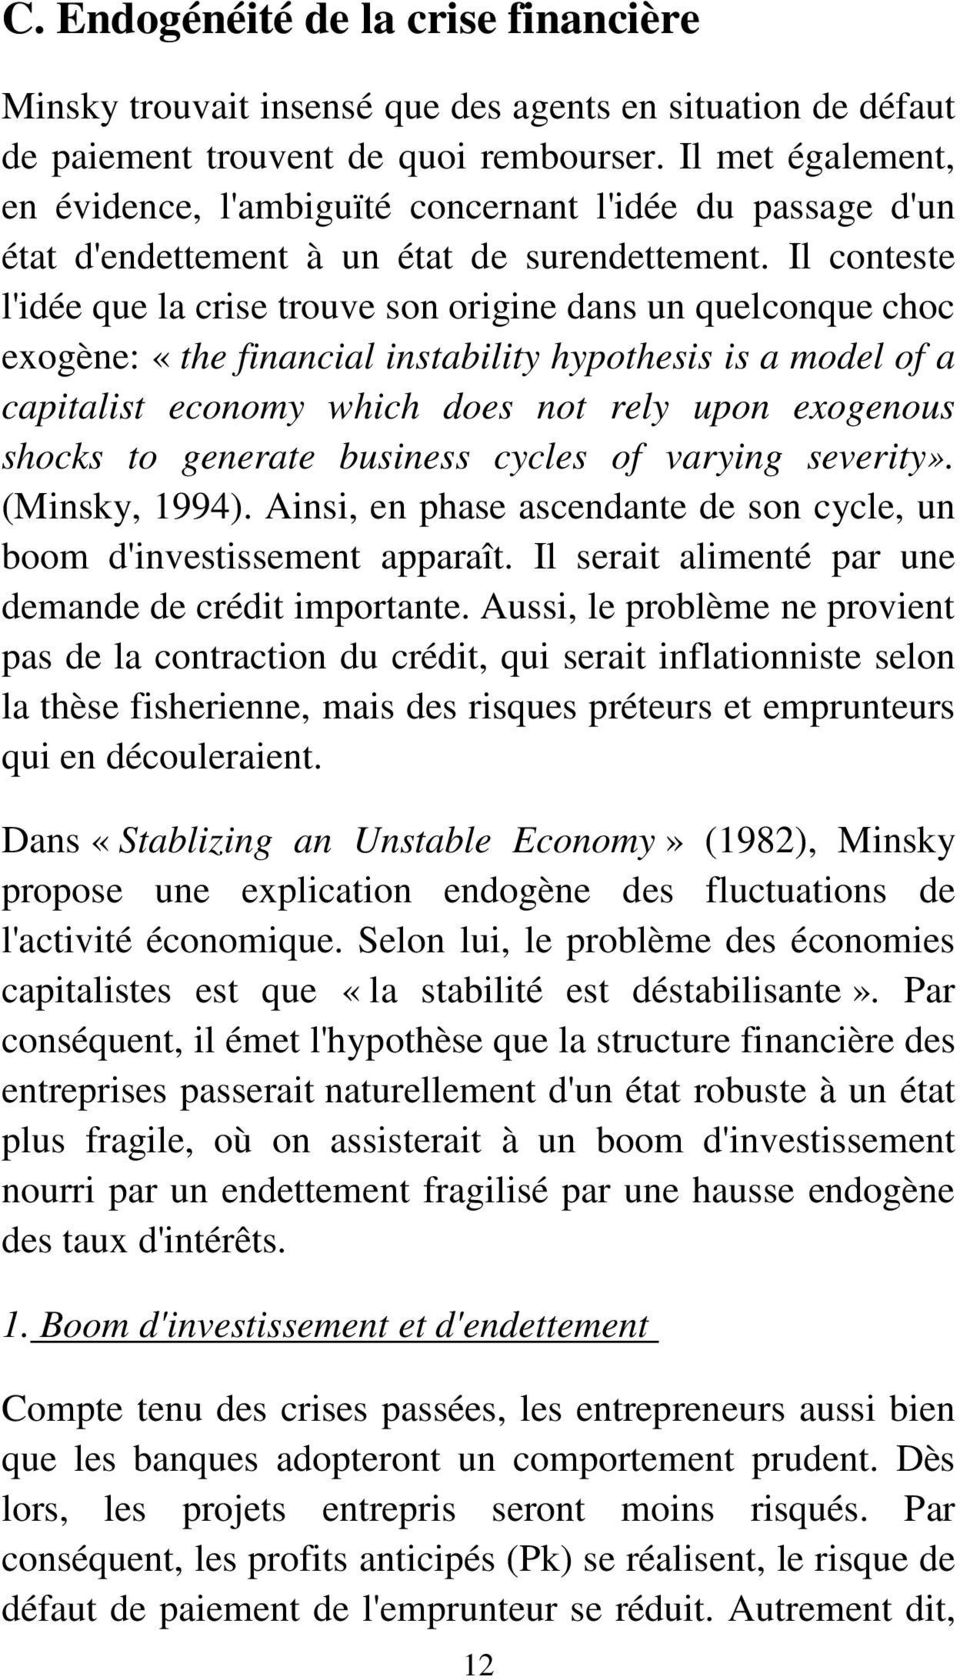 Il conteste l'idée que la crise trouve son origine dans un quelconque choc exogène: «the financial instability hypothesis is a model of a capitalist economy which does not rely upon exogenous shocks